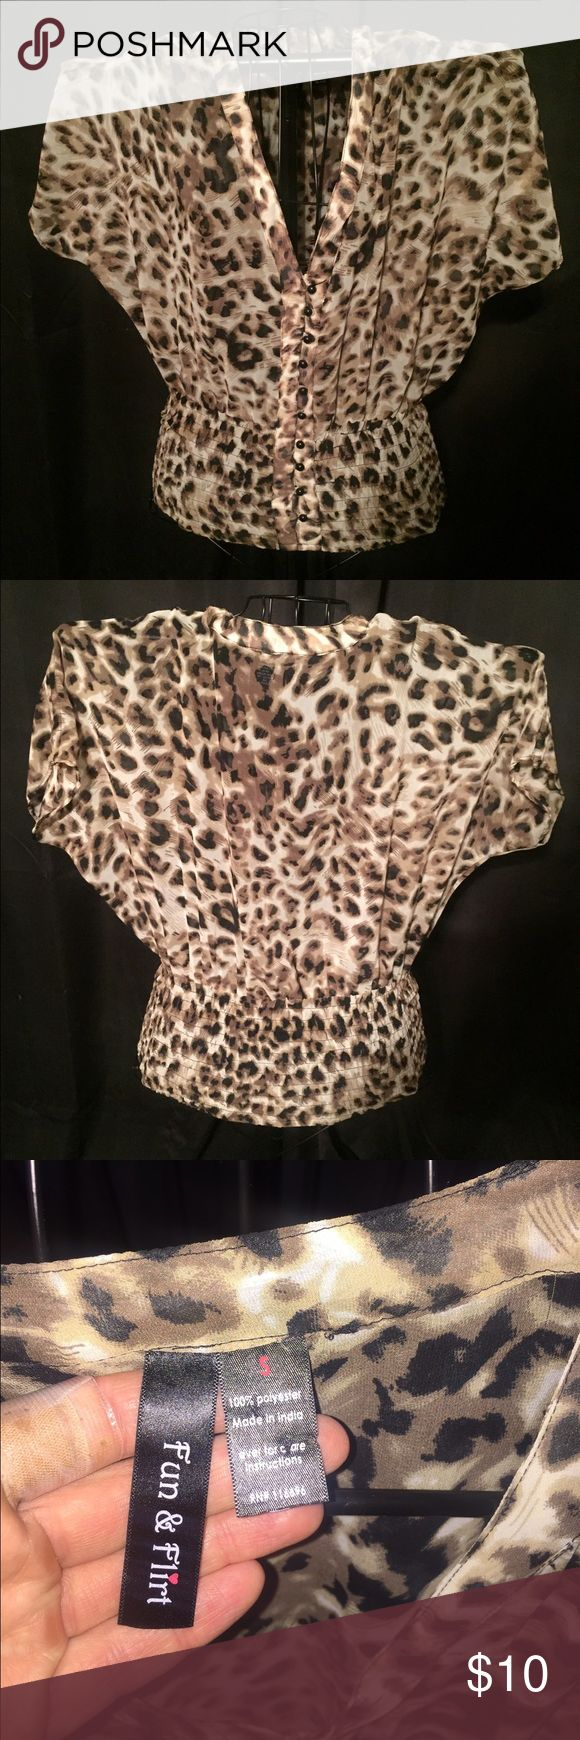 Cheetah Print Shirt Cheetah print shirt. Brand new without tags. Buttons start at the bust down to the waste. Sheer material. The bottom is stretchy and fitted to the waste line. Size small. Fun & Flirt Tops Blouses